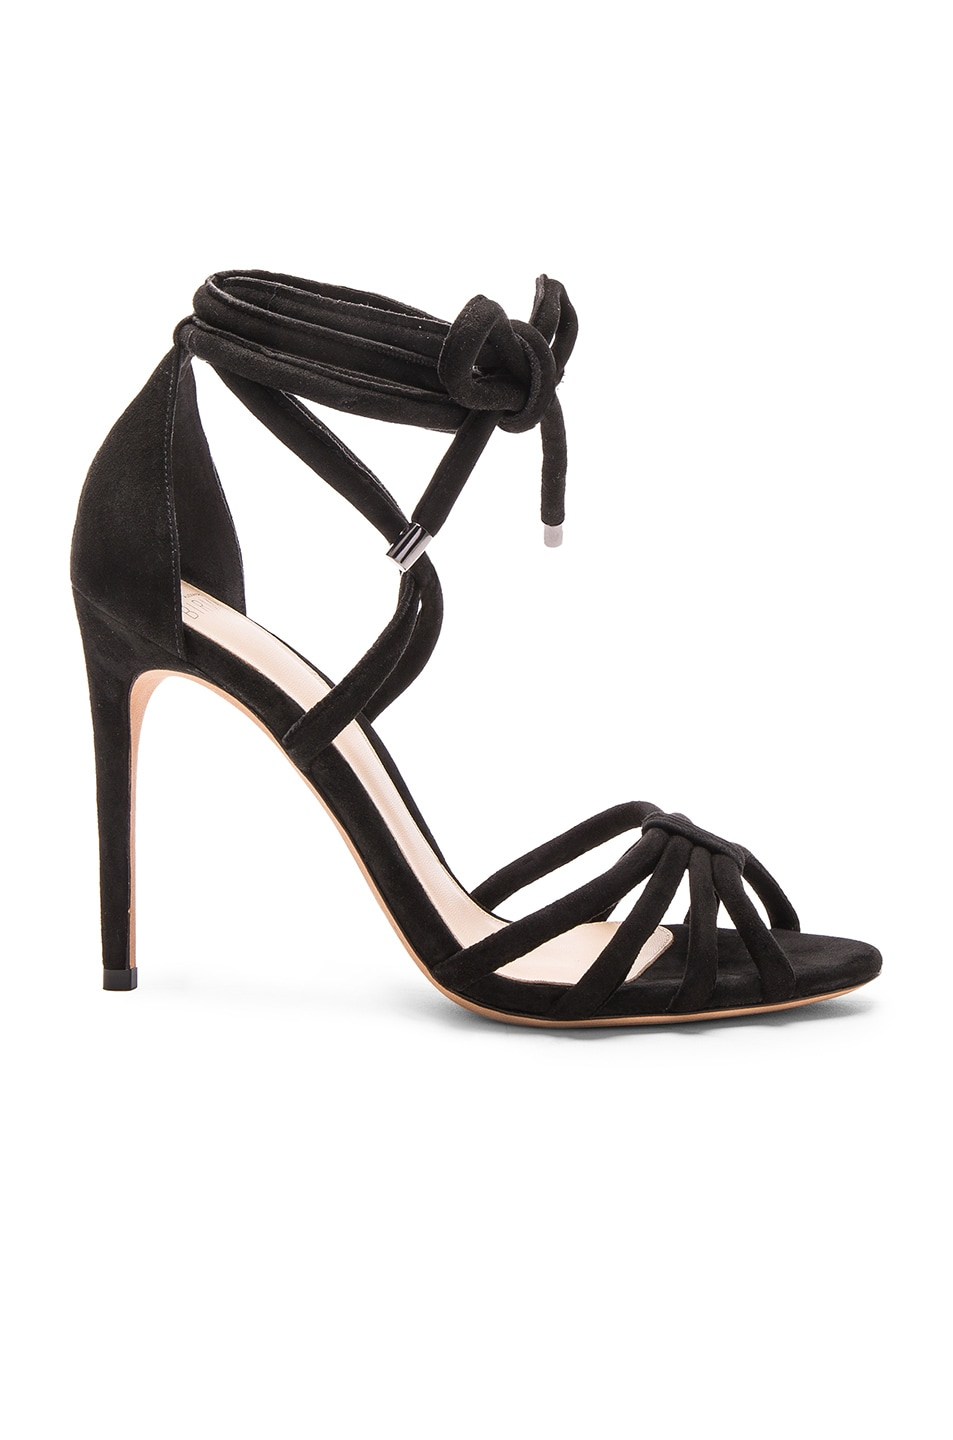 Image 1 of Alexandre Birman Suede Keane Heels in Black